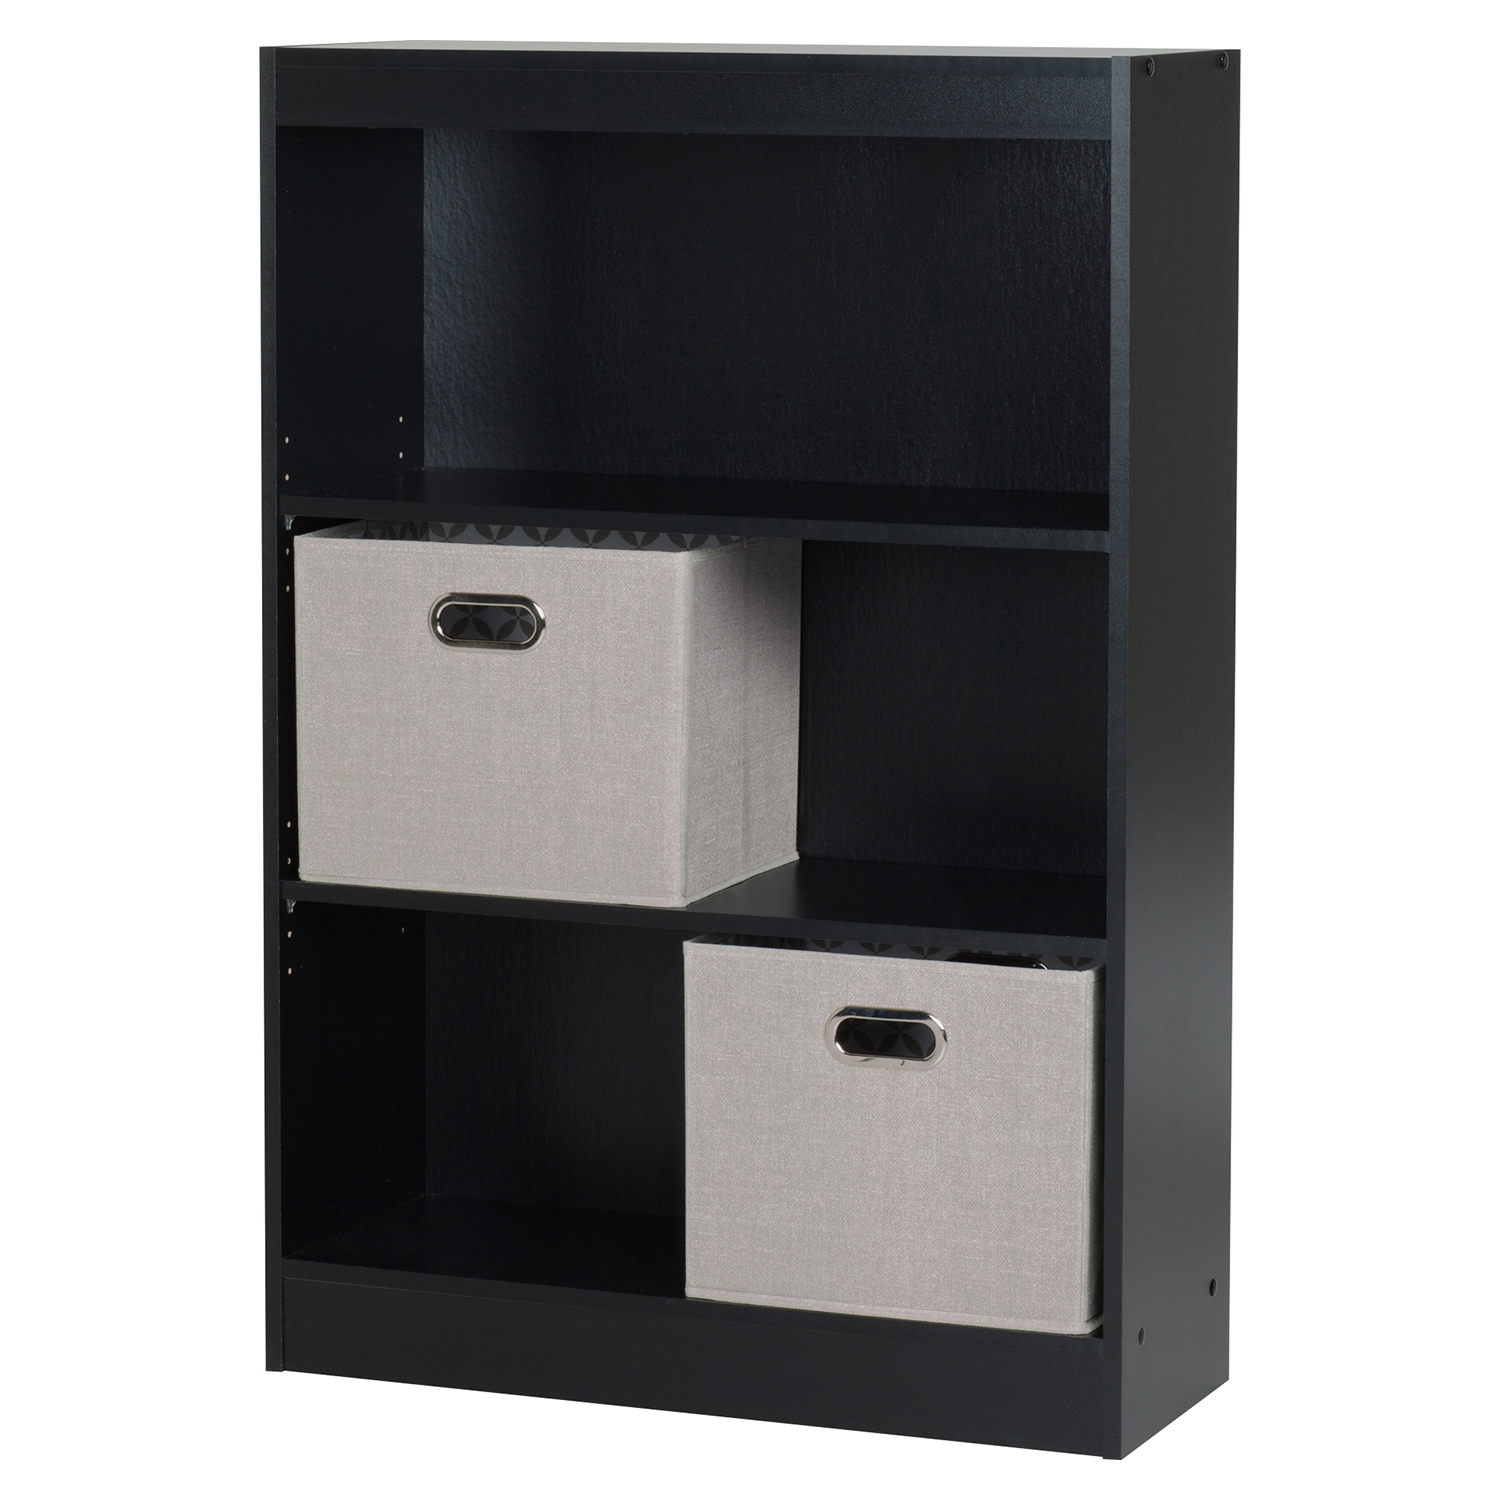 Axess Bookcase - 2 Storage Baskets, 3 Shelves, Pure Black - SS-8050144K